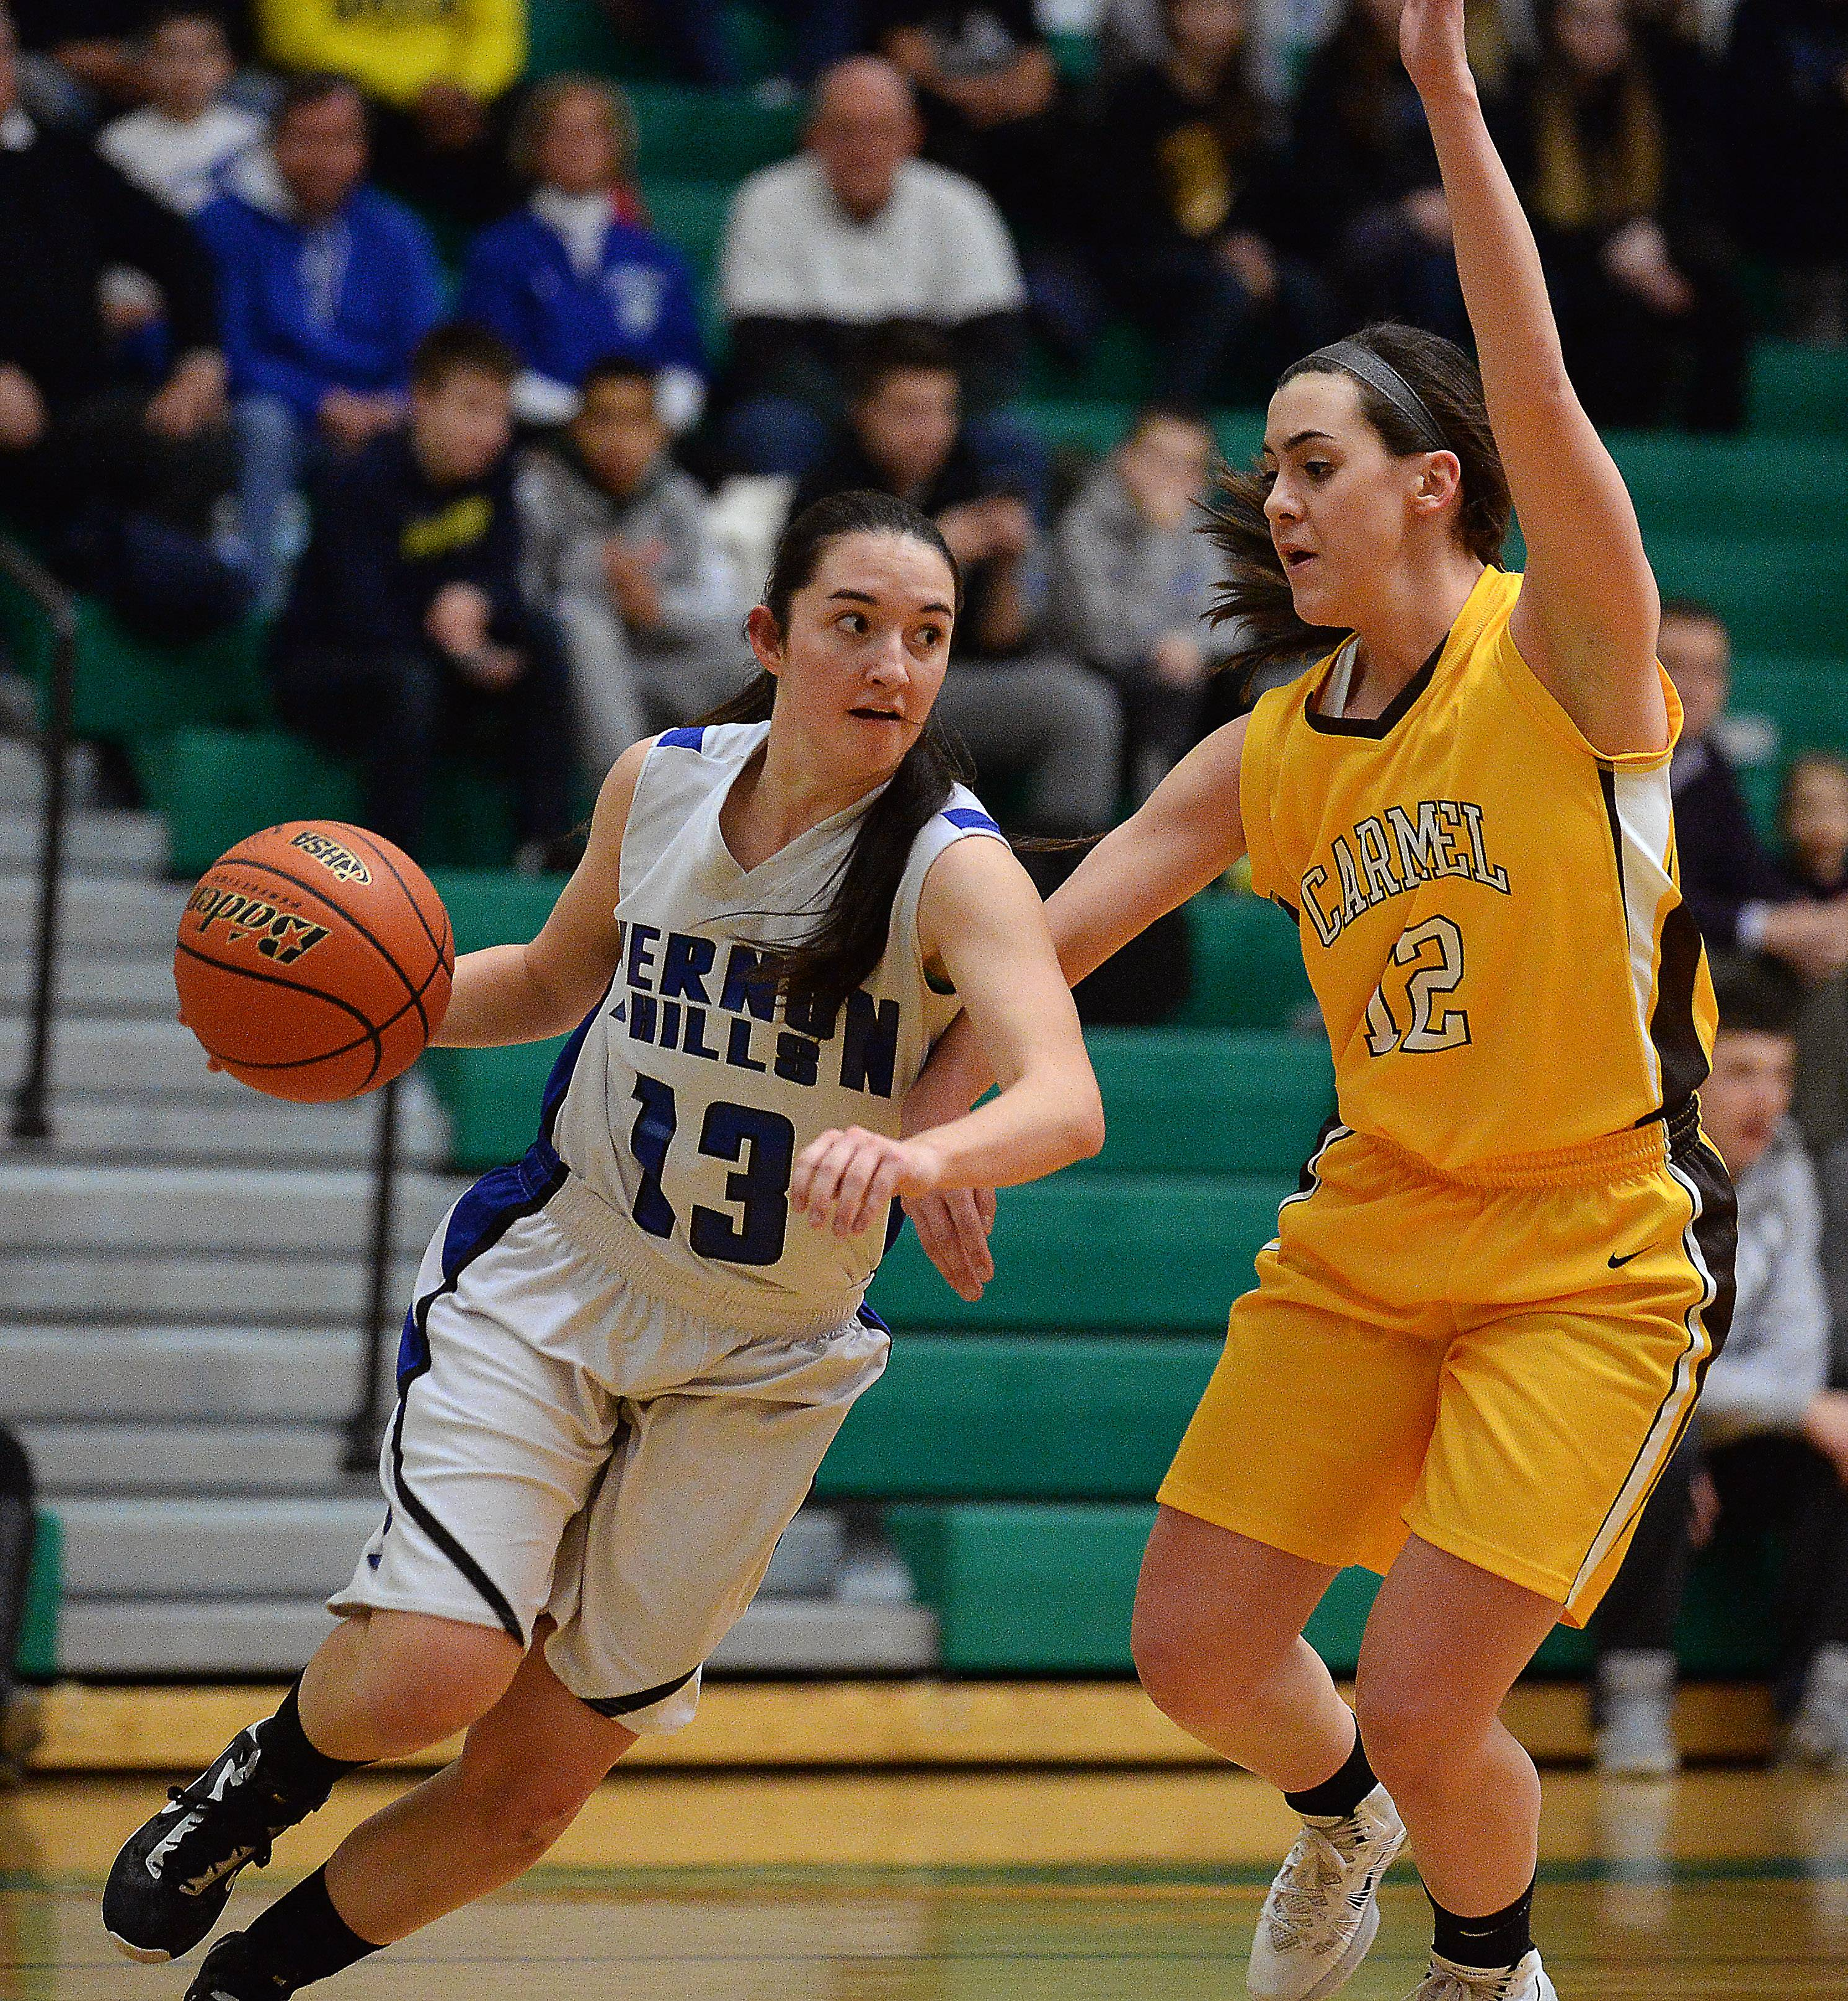 Vernon Hills' Katherine Koczwara moves around Carmel's Kathleen Fellcelli in the first half of Class 3A sectional final play at Ridgewood High School on Thursday.